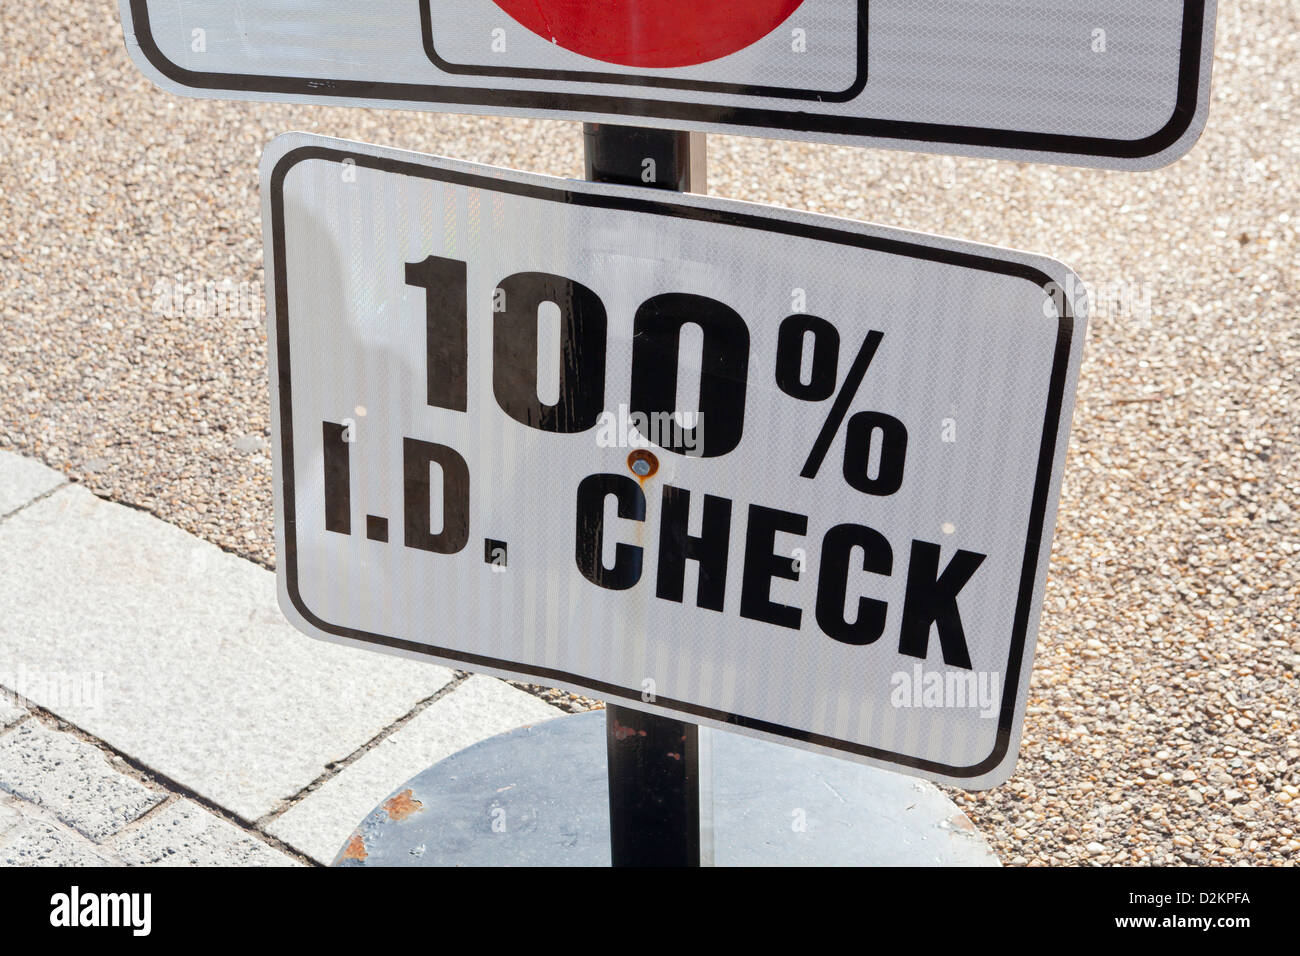 100% ID Check sign - Stock Image